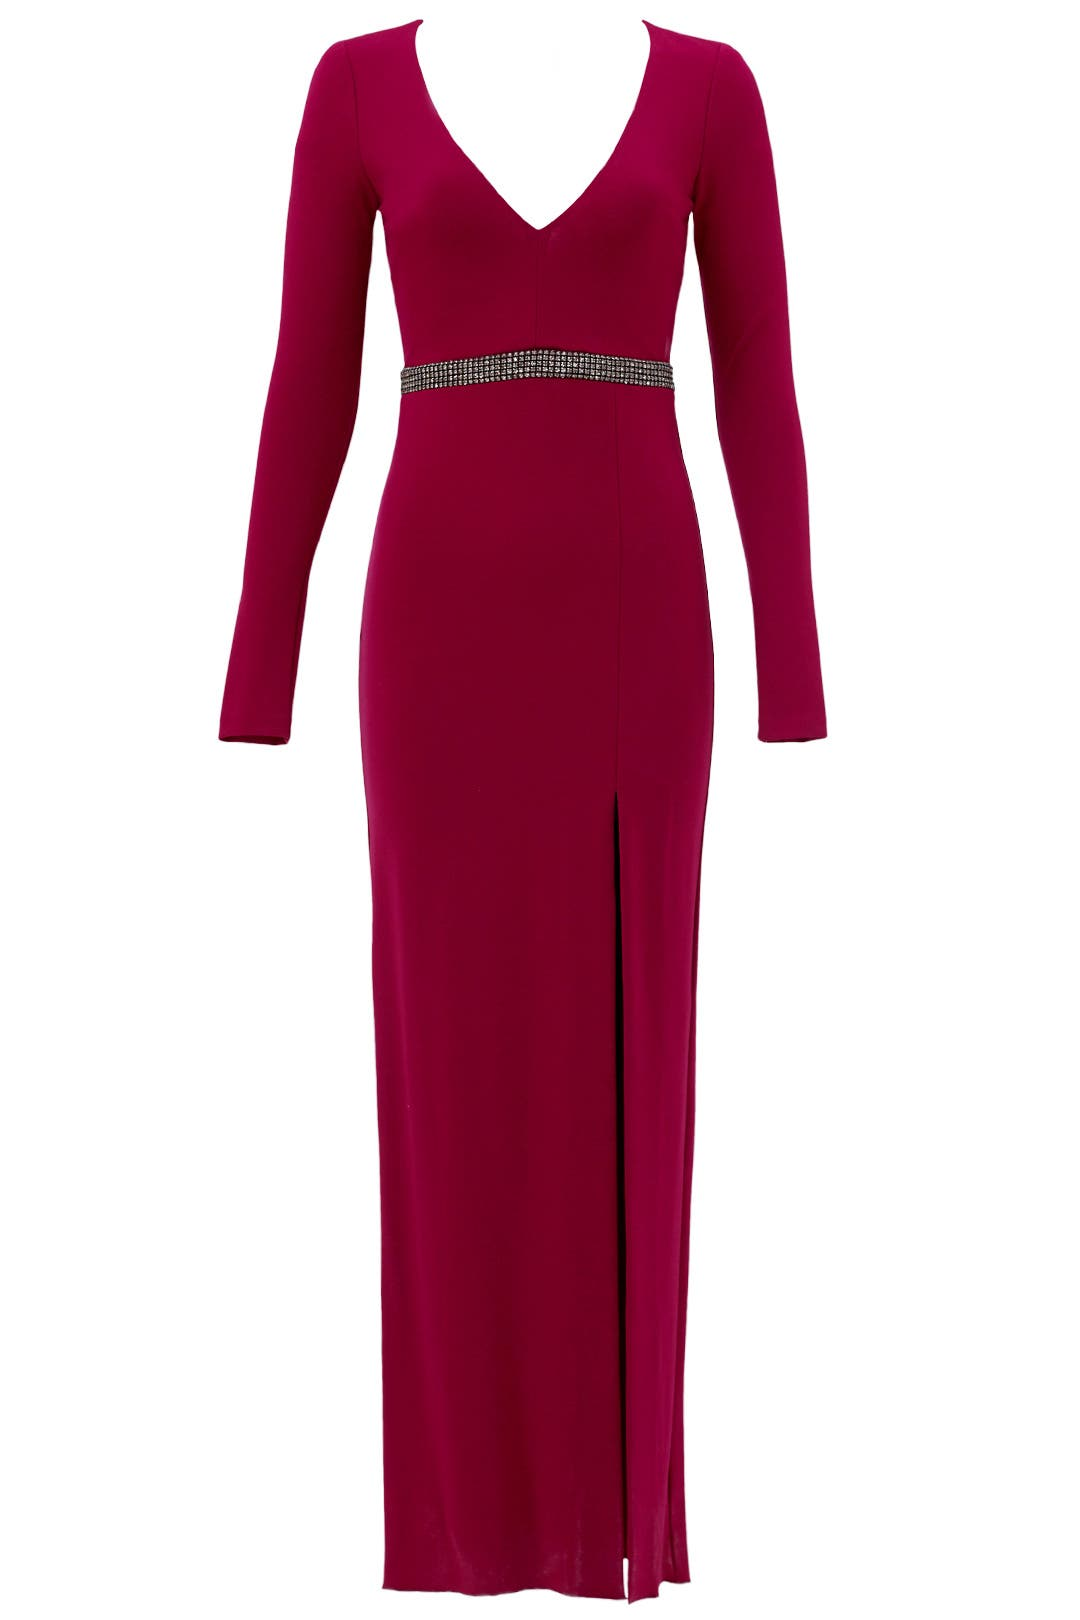 Red Berry Gown by Nicole Miller for $100 | Rent the Runway